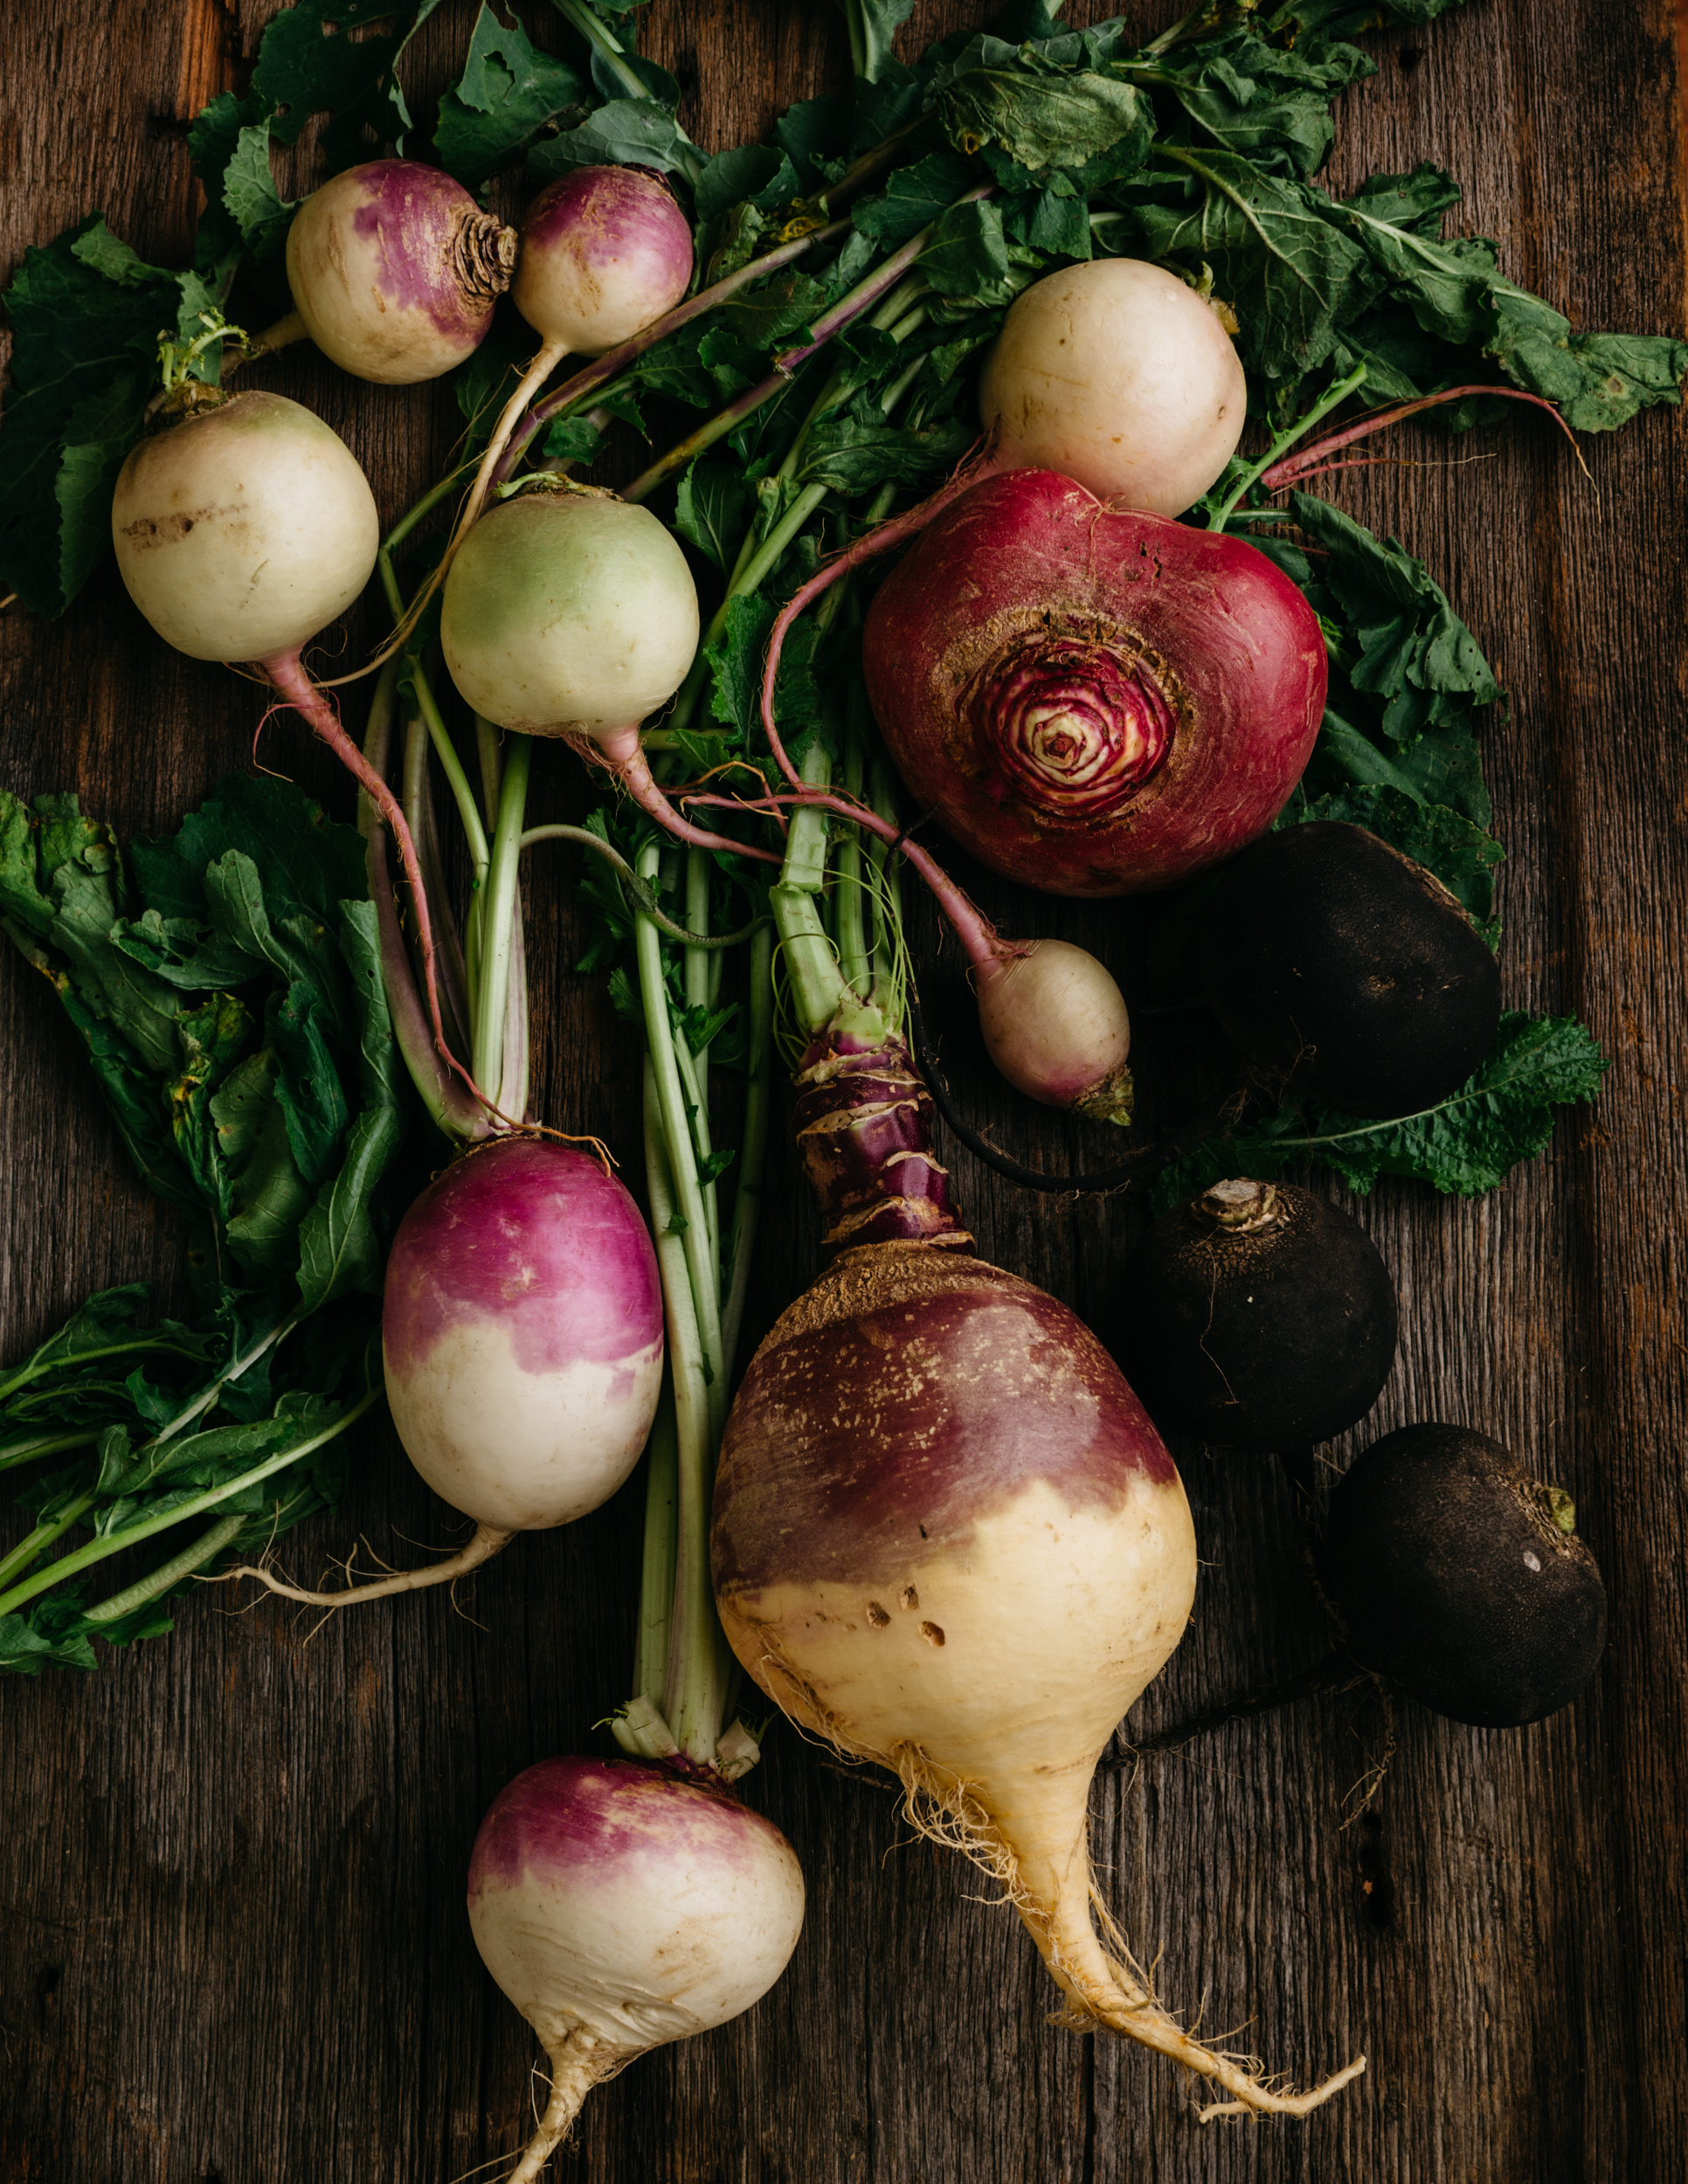 Planting turnips and radishes in 2018 38